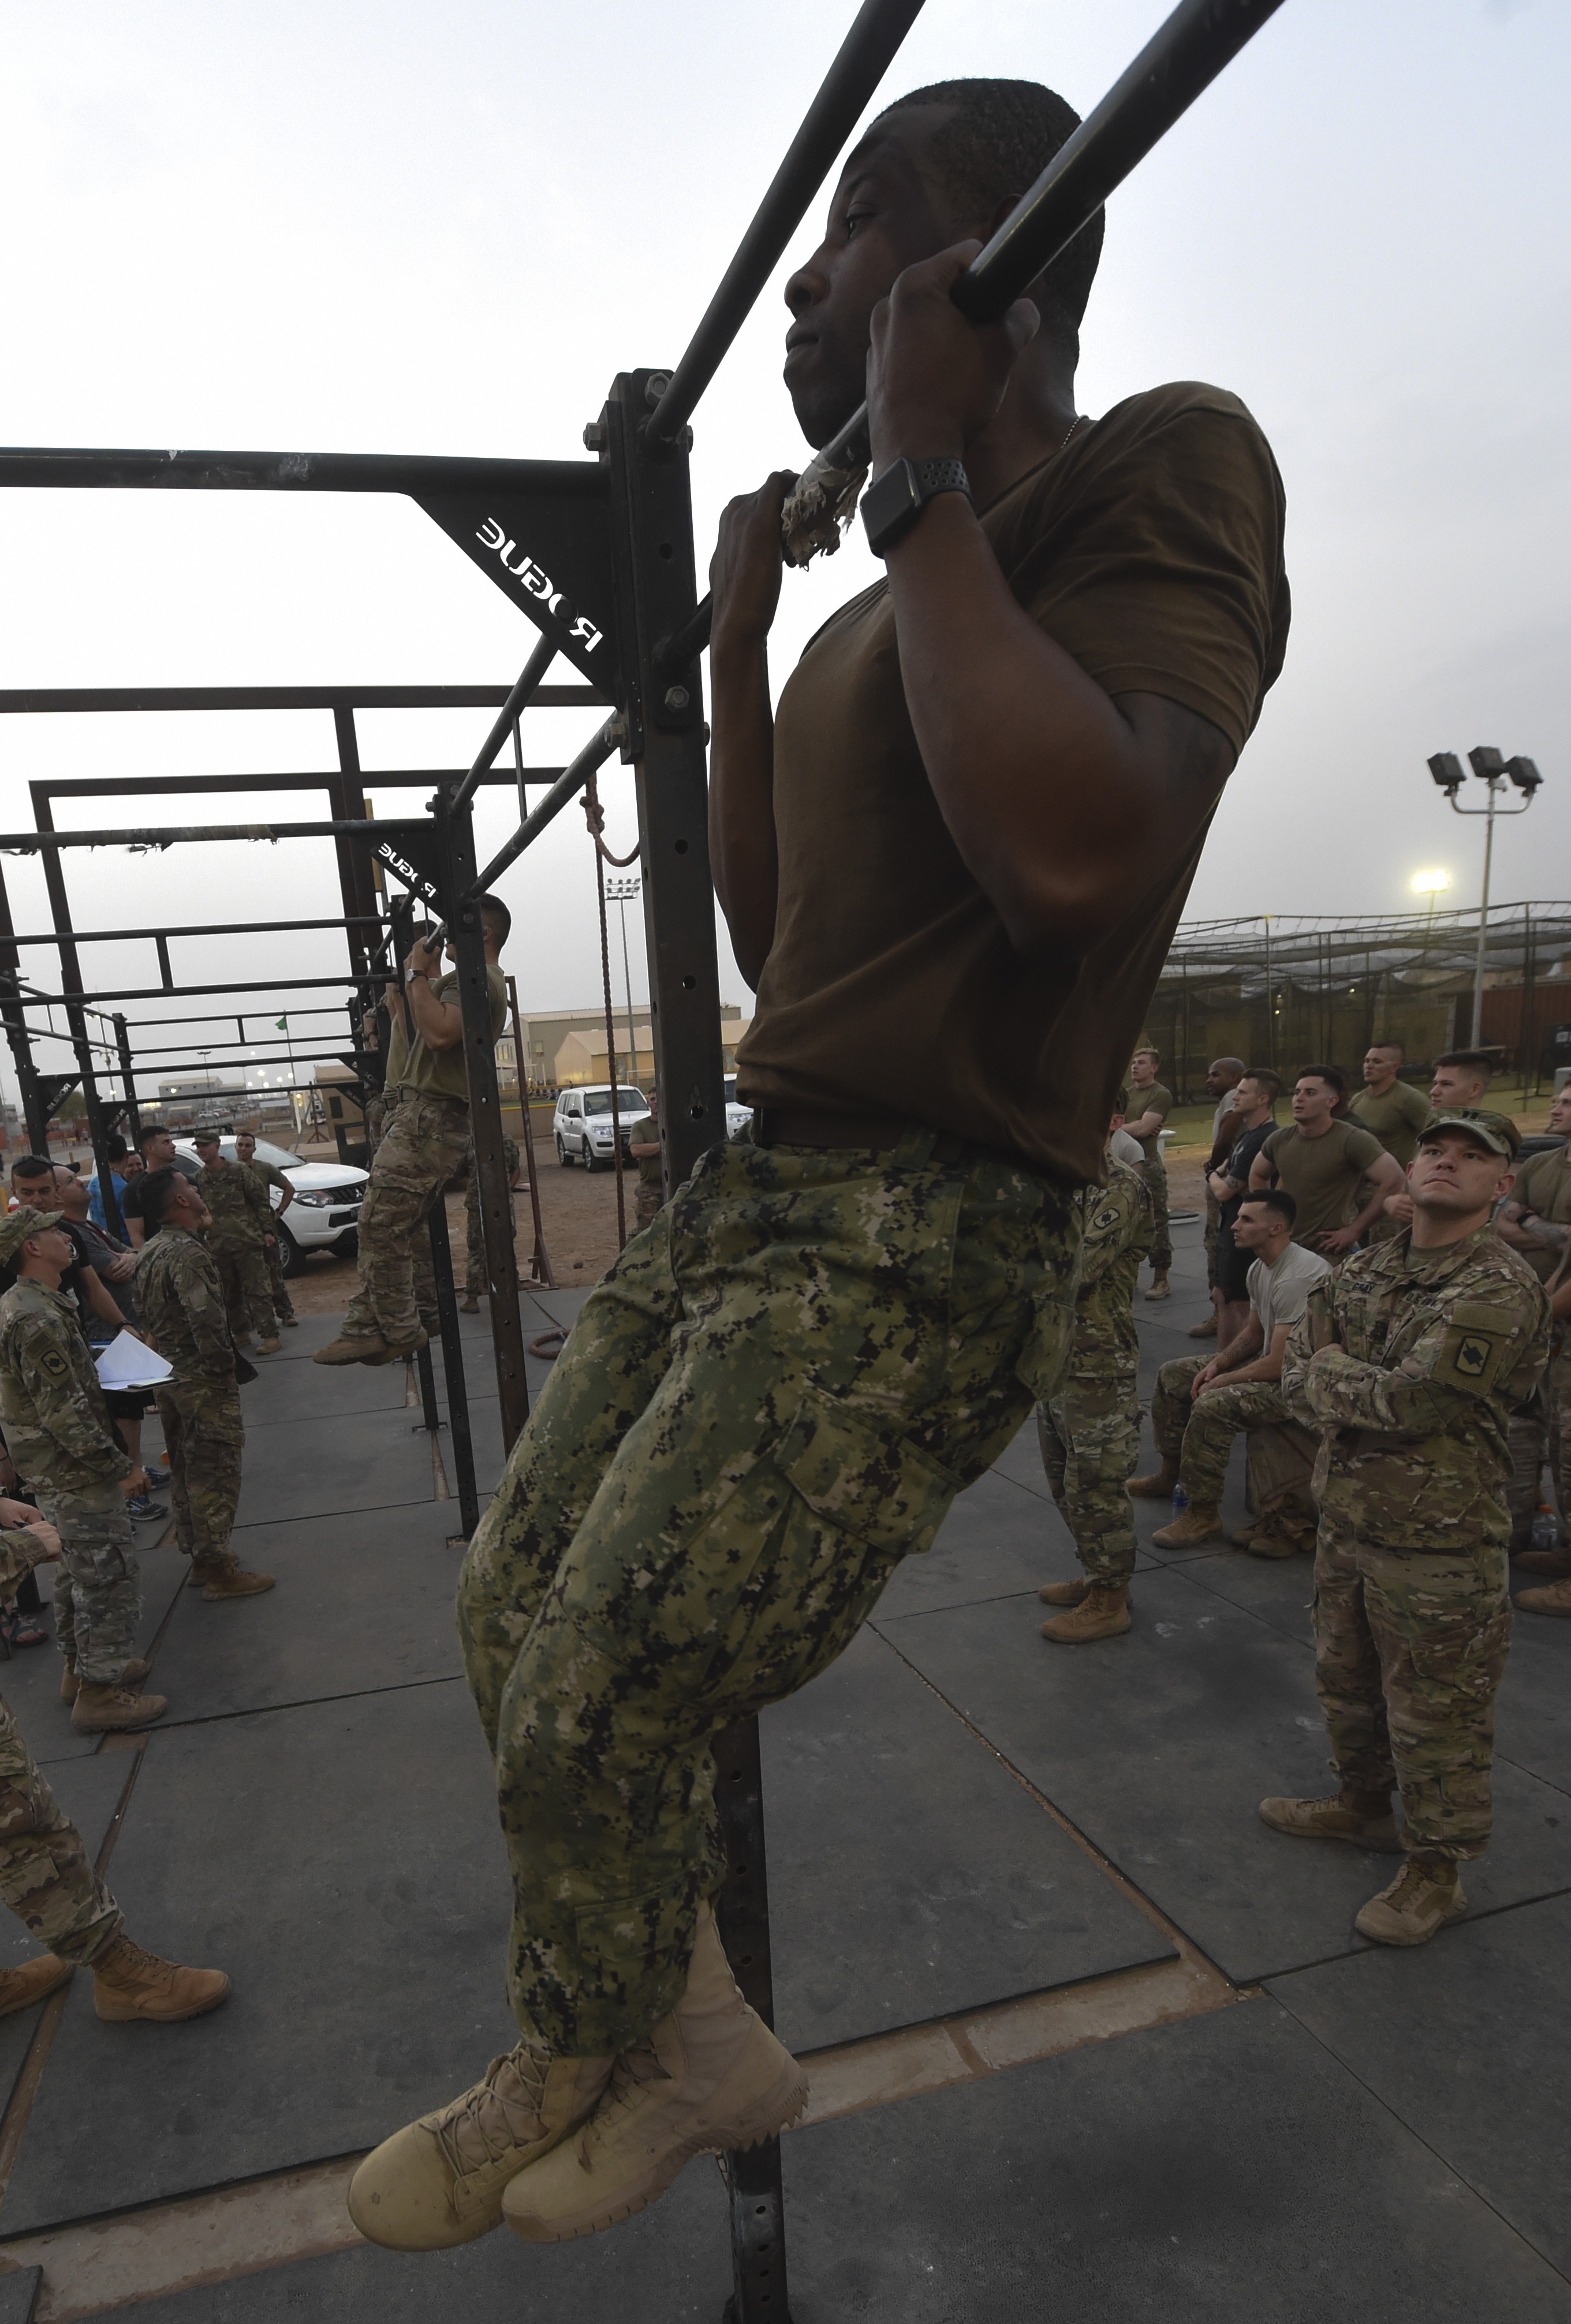 A U.S. service member completes a flexed arm hang during a physical training test at Camp Lemonnier, Djibouti, Aug. 5, 2017. The test was in preparation for an upcoming multi-day French Desert Commando Course that will challenge participants physically and mentally through land and water obstacles, combat scenarios and extreme endurance exercises while surviving in austere field conditions. (U.S. Air Force photo by Staff Sgt. Eboni Prince)